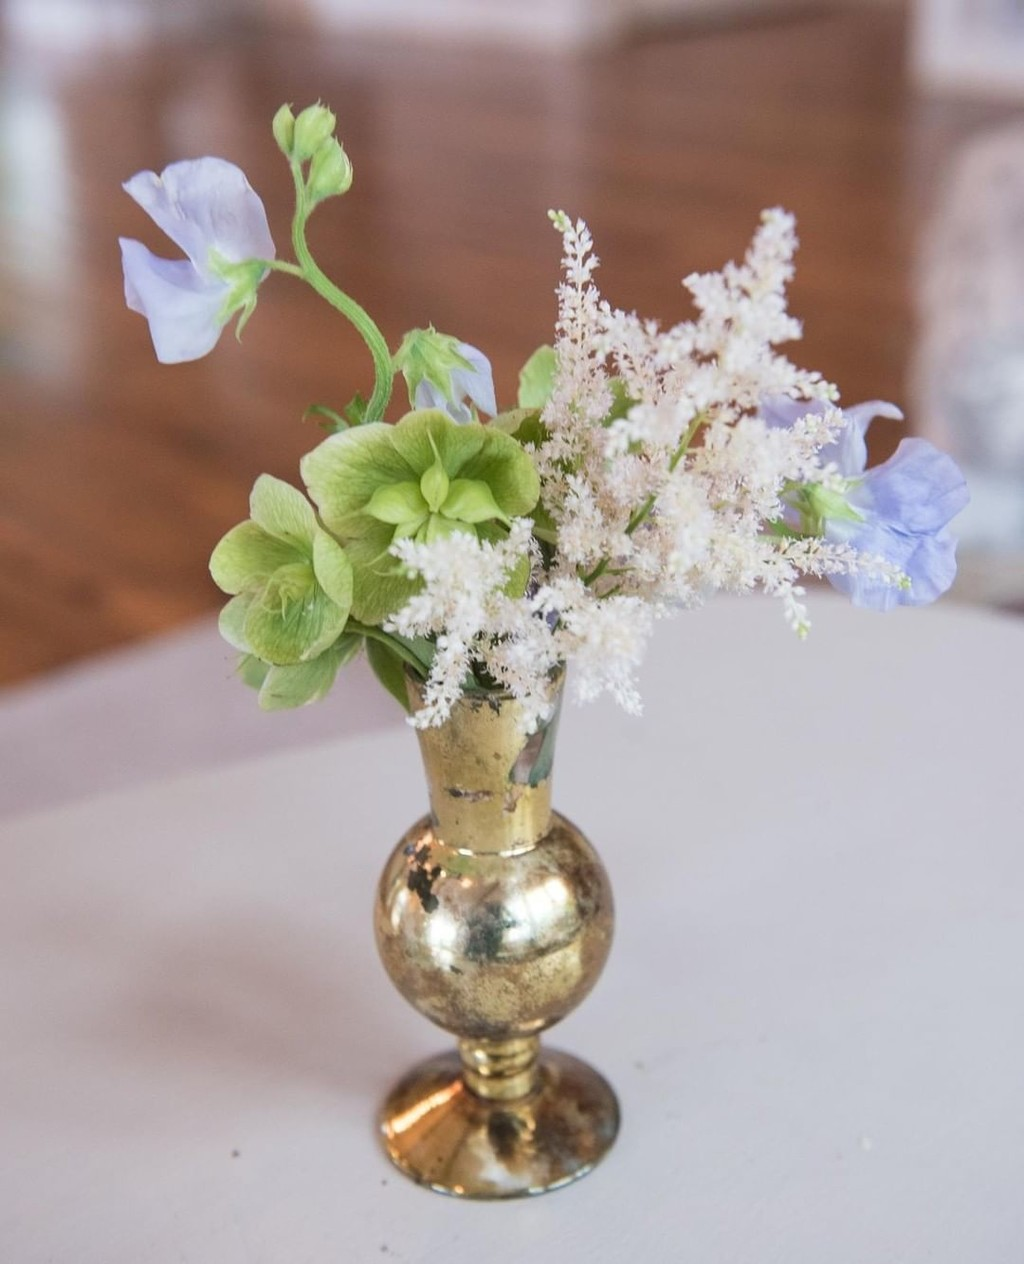 Sweet Pea, and Hellebores, and Astilbe, OH MY 😍